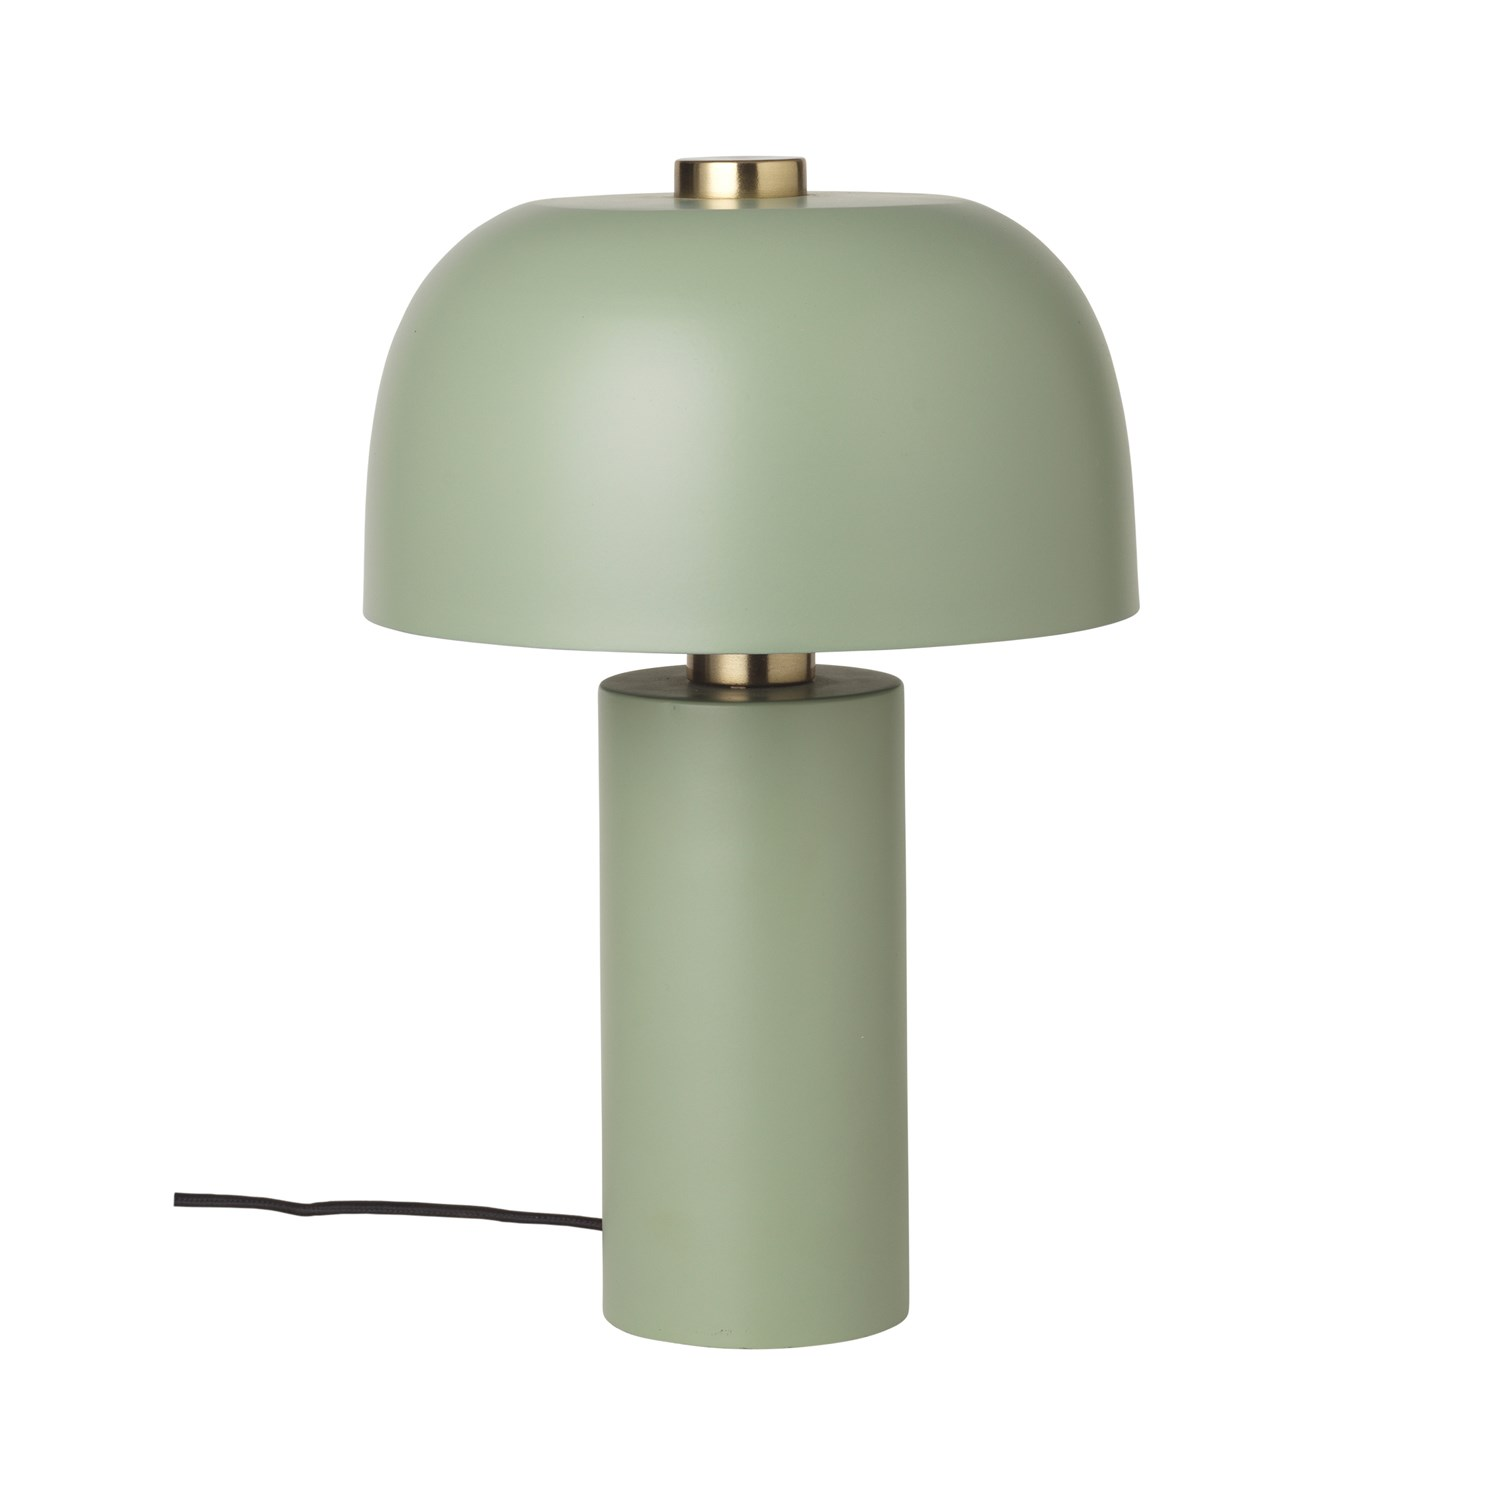 Cozy Living - Lamp Lulu - SEAGRASS